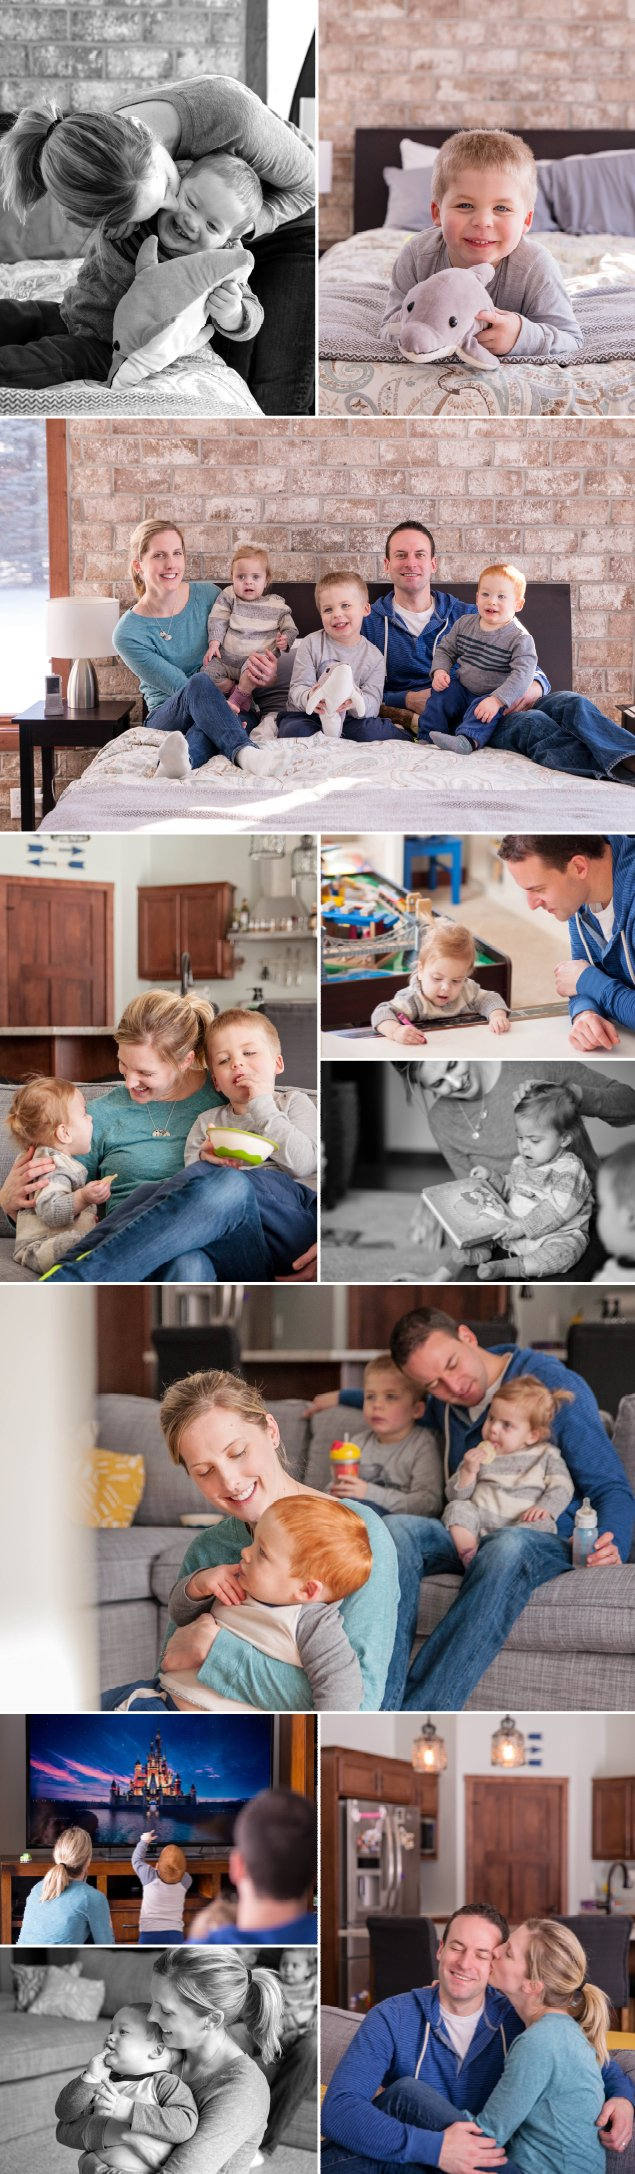 Green_Bay_Family_Lifestyle_Session_Home_Photographer_Photography_Kids